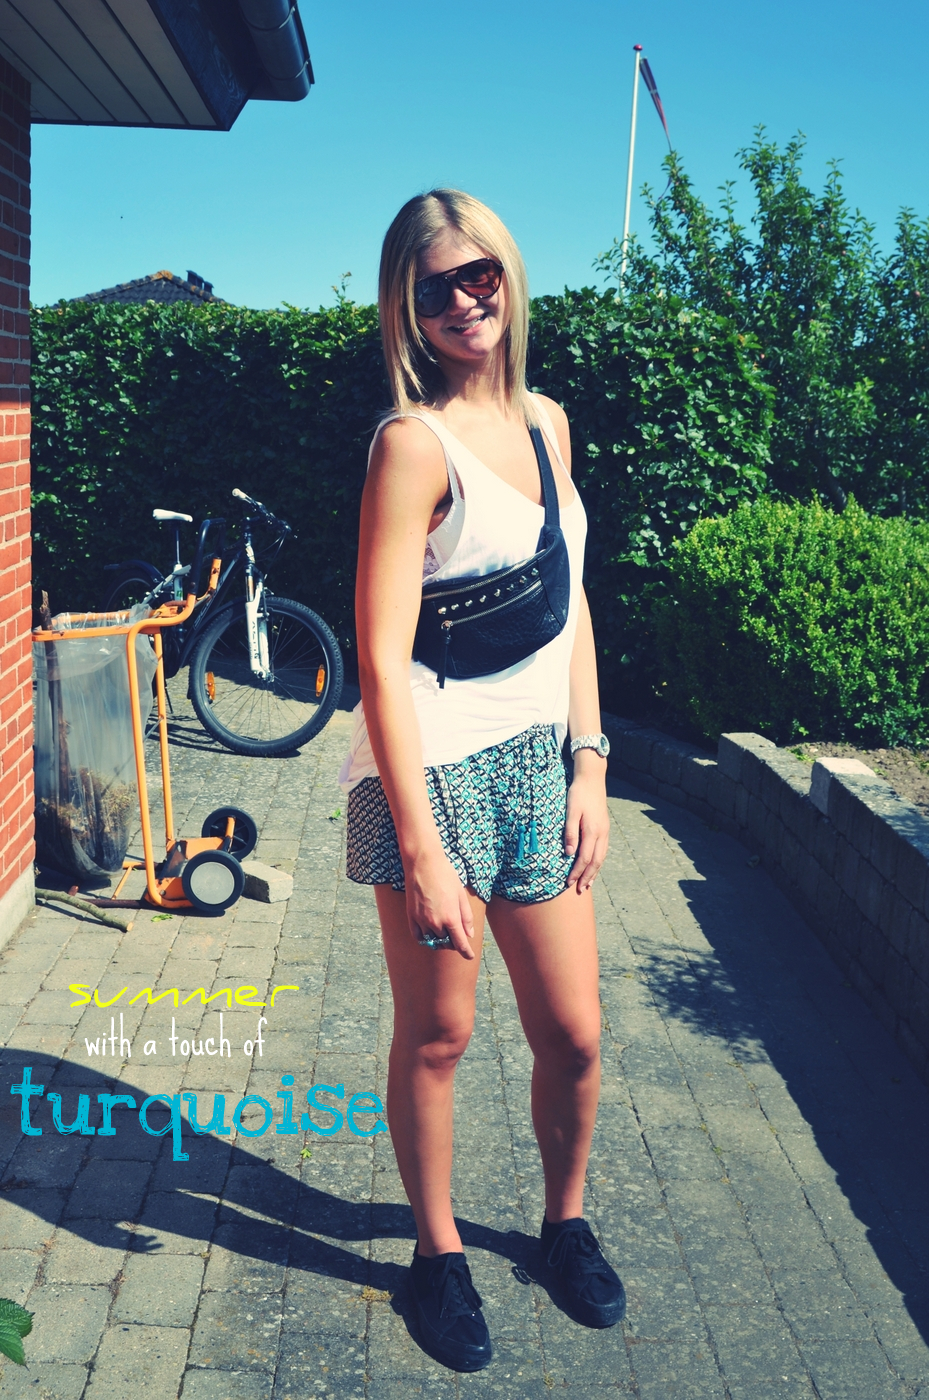 dagens-outfit-turquoise-pearls